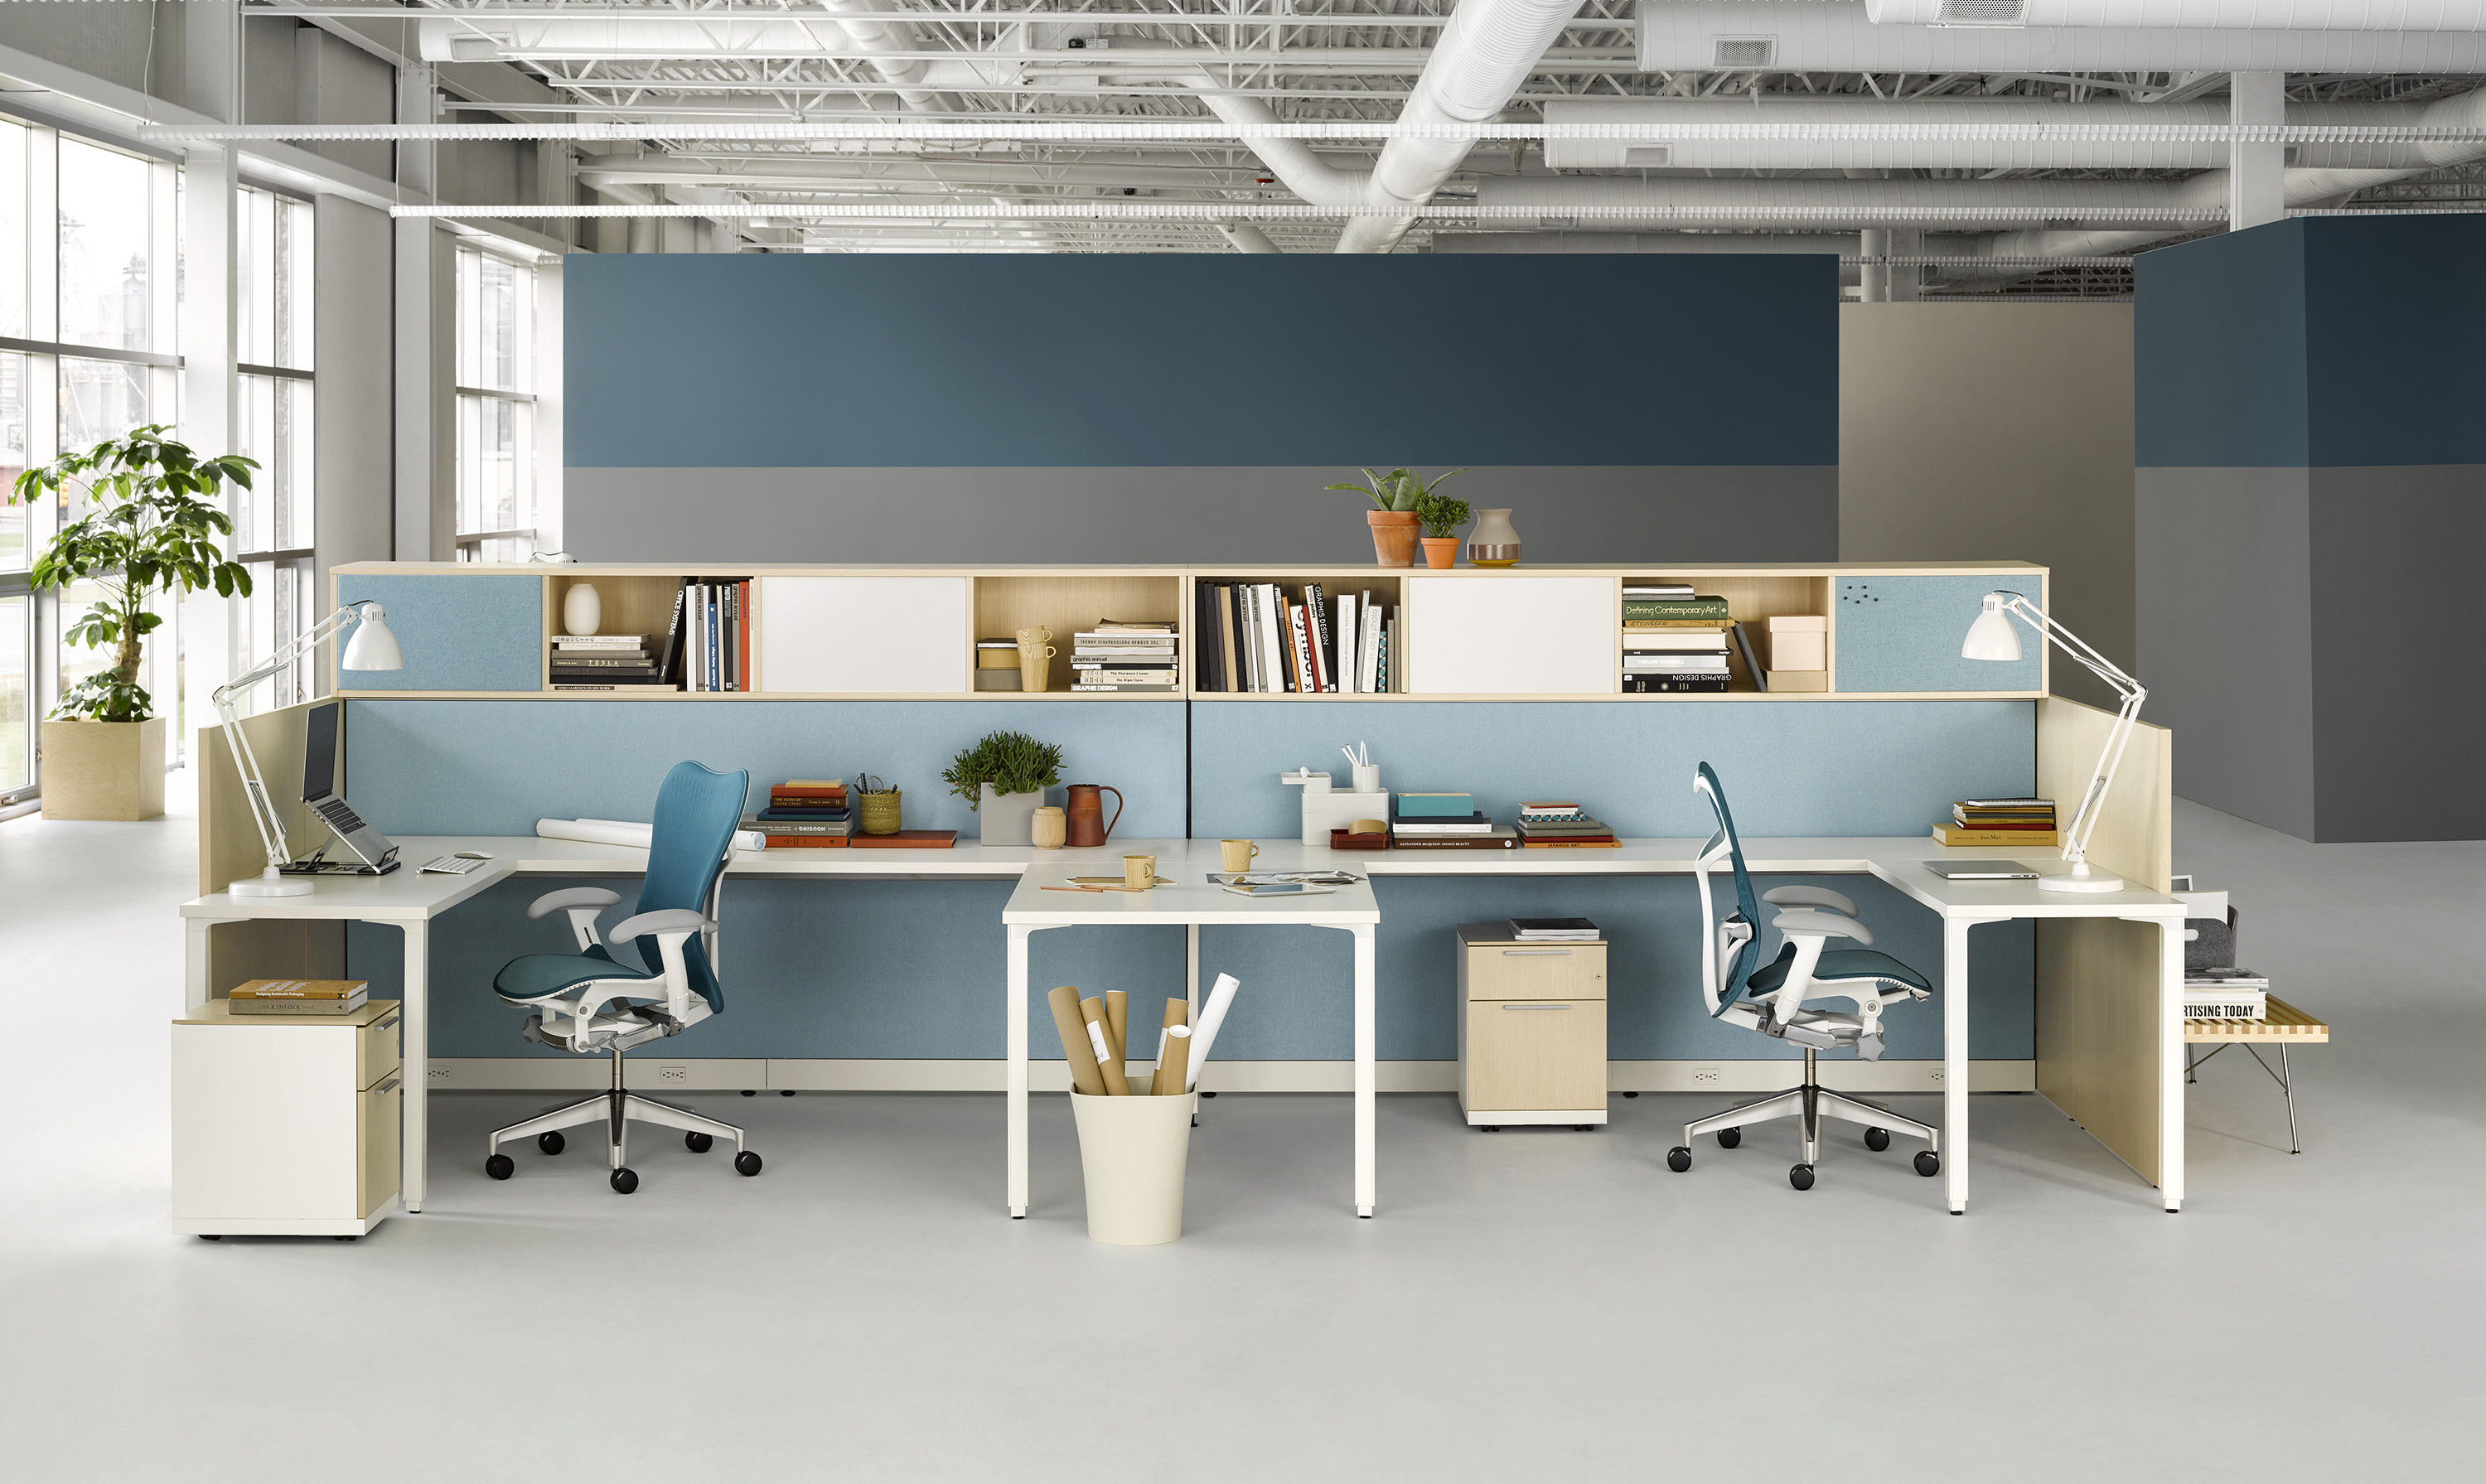 Office Space Design and Planning: Where to Start